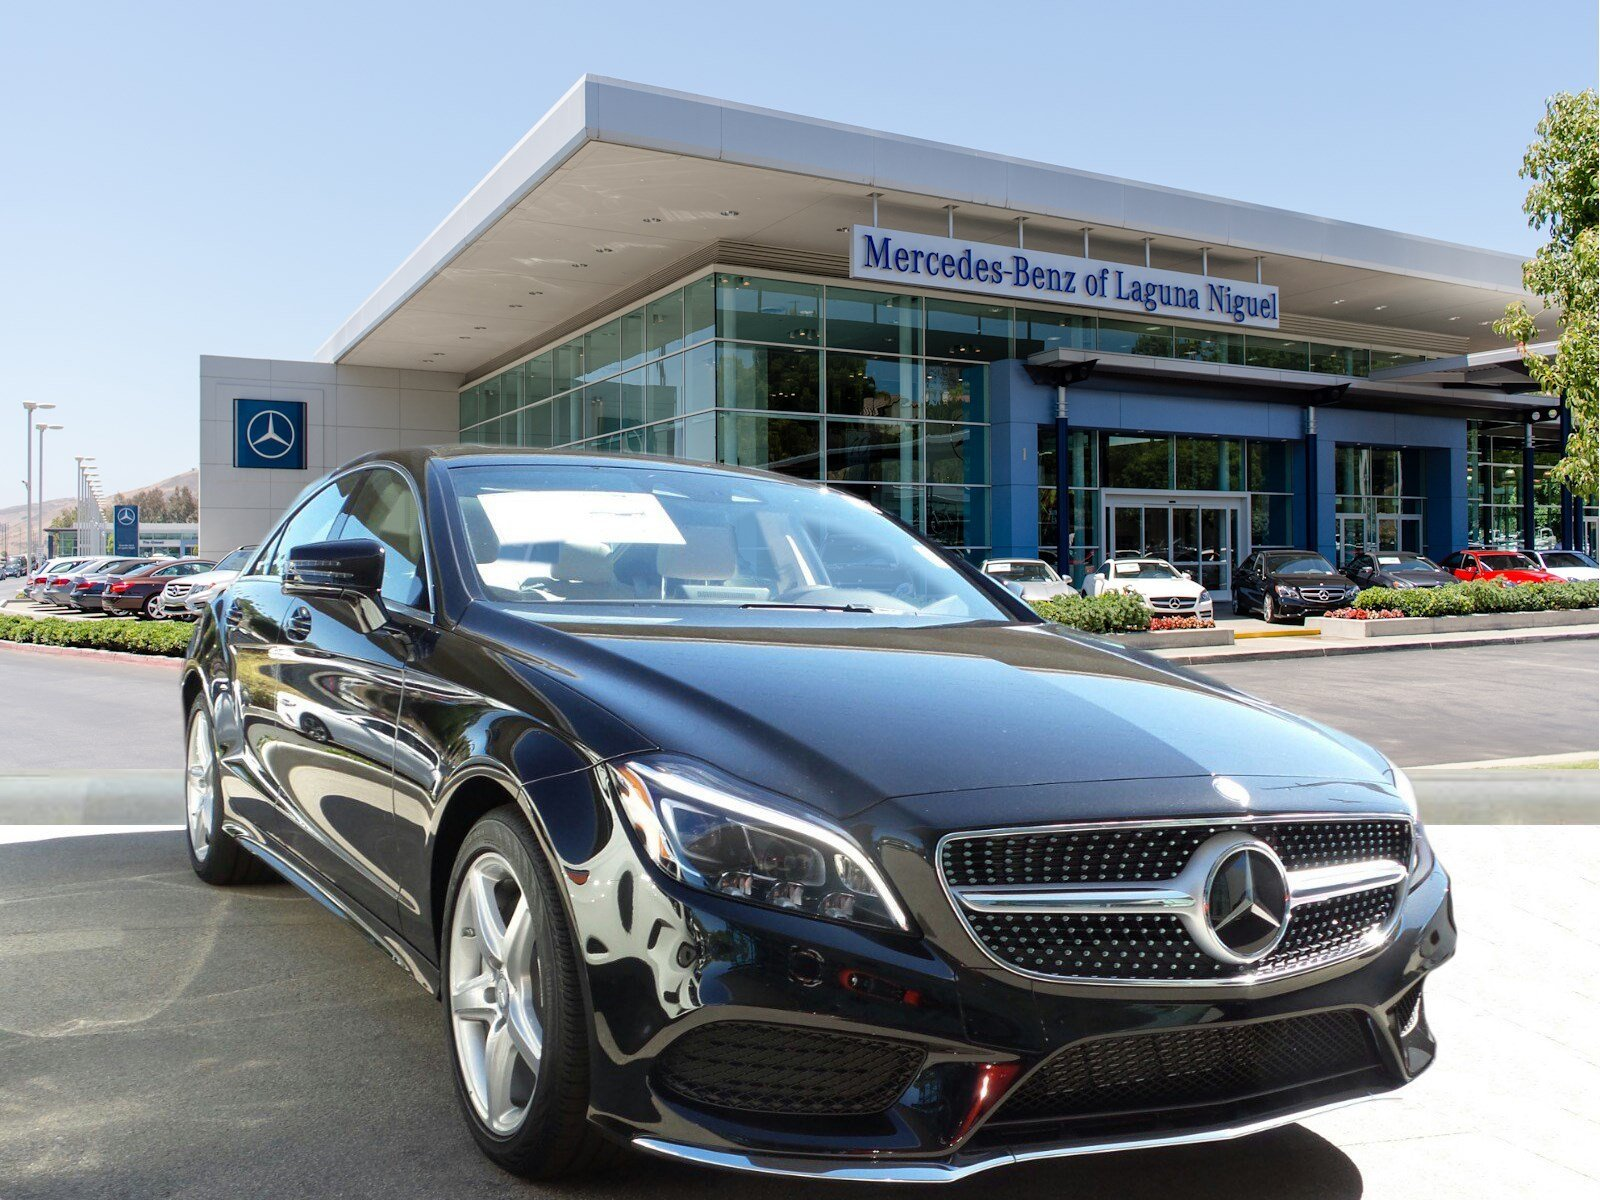 coupe in laguna niguel a34538t mercedes benz of laguna niguel. Cars Review. Best American Auto & Cars Review